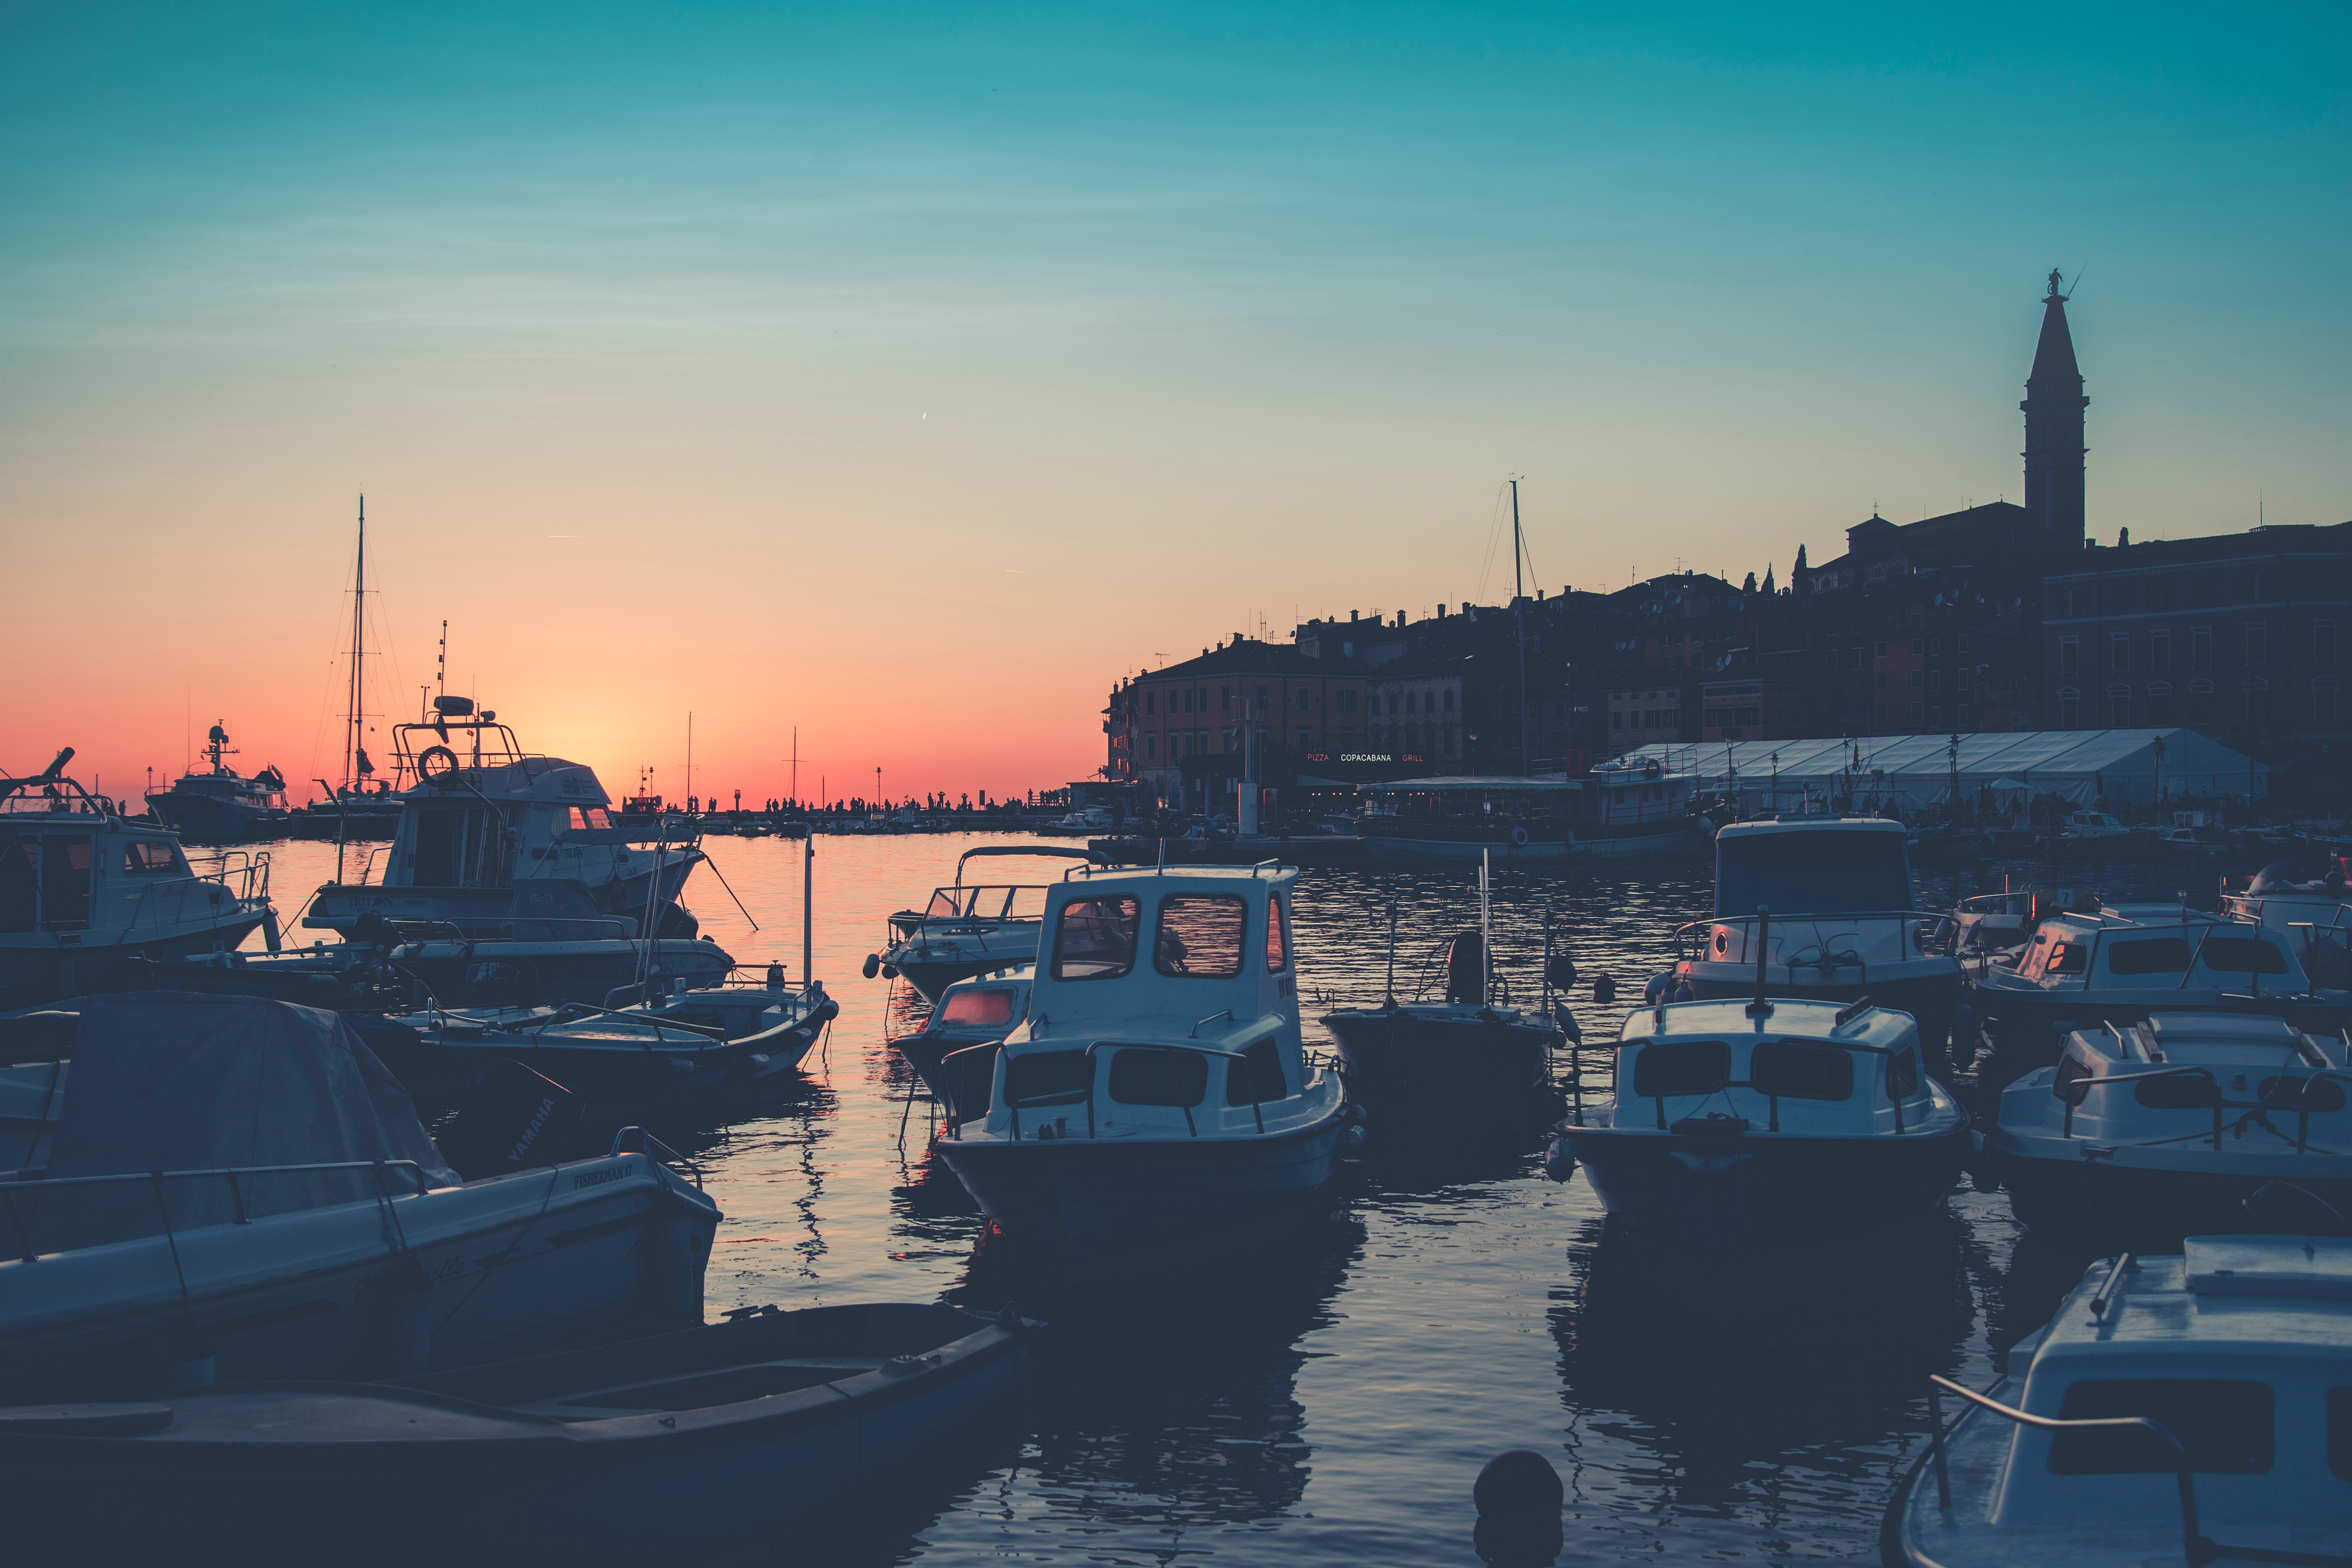 Bunch of boats on body of water during golden hour photo